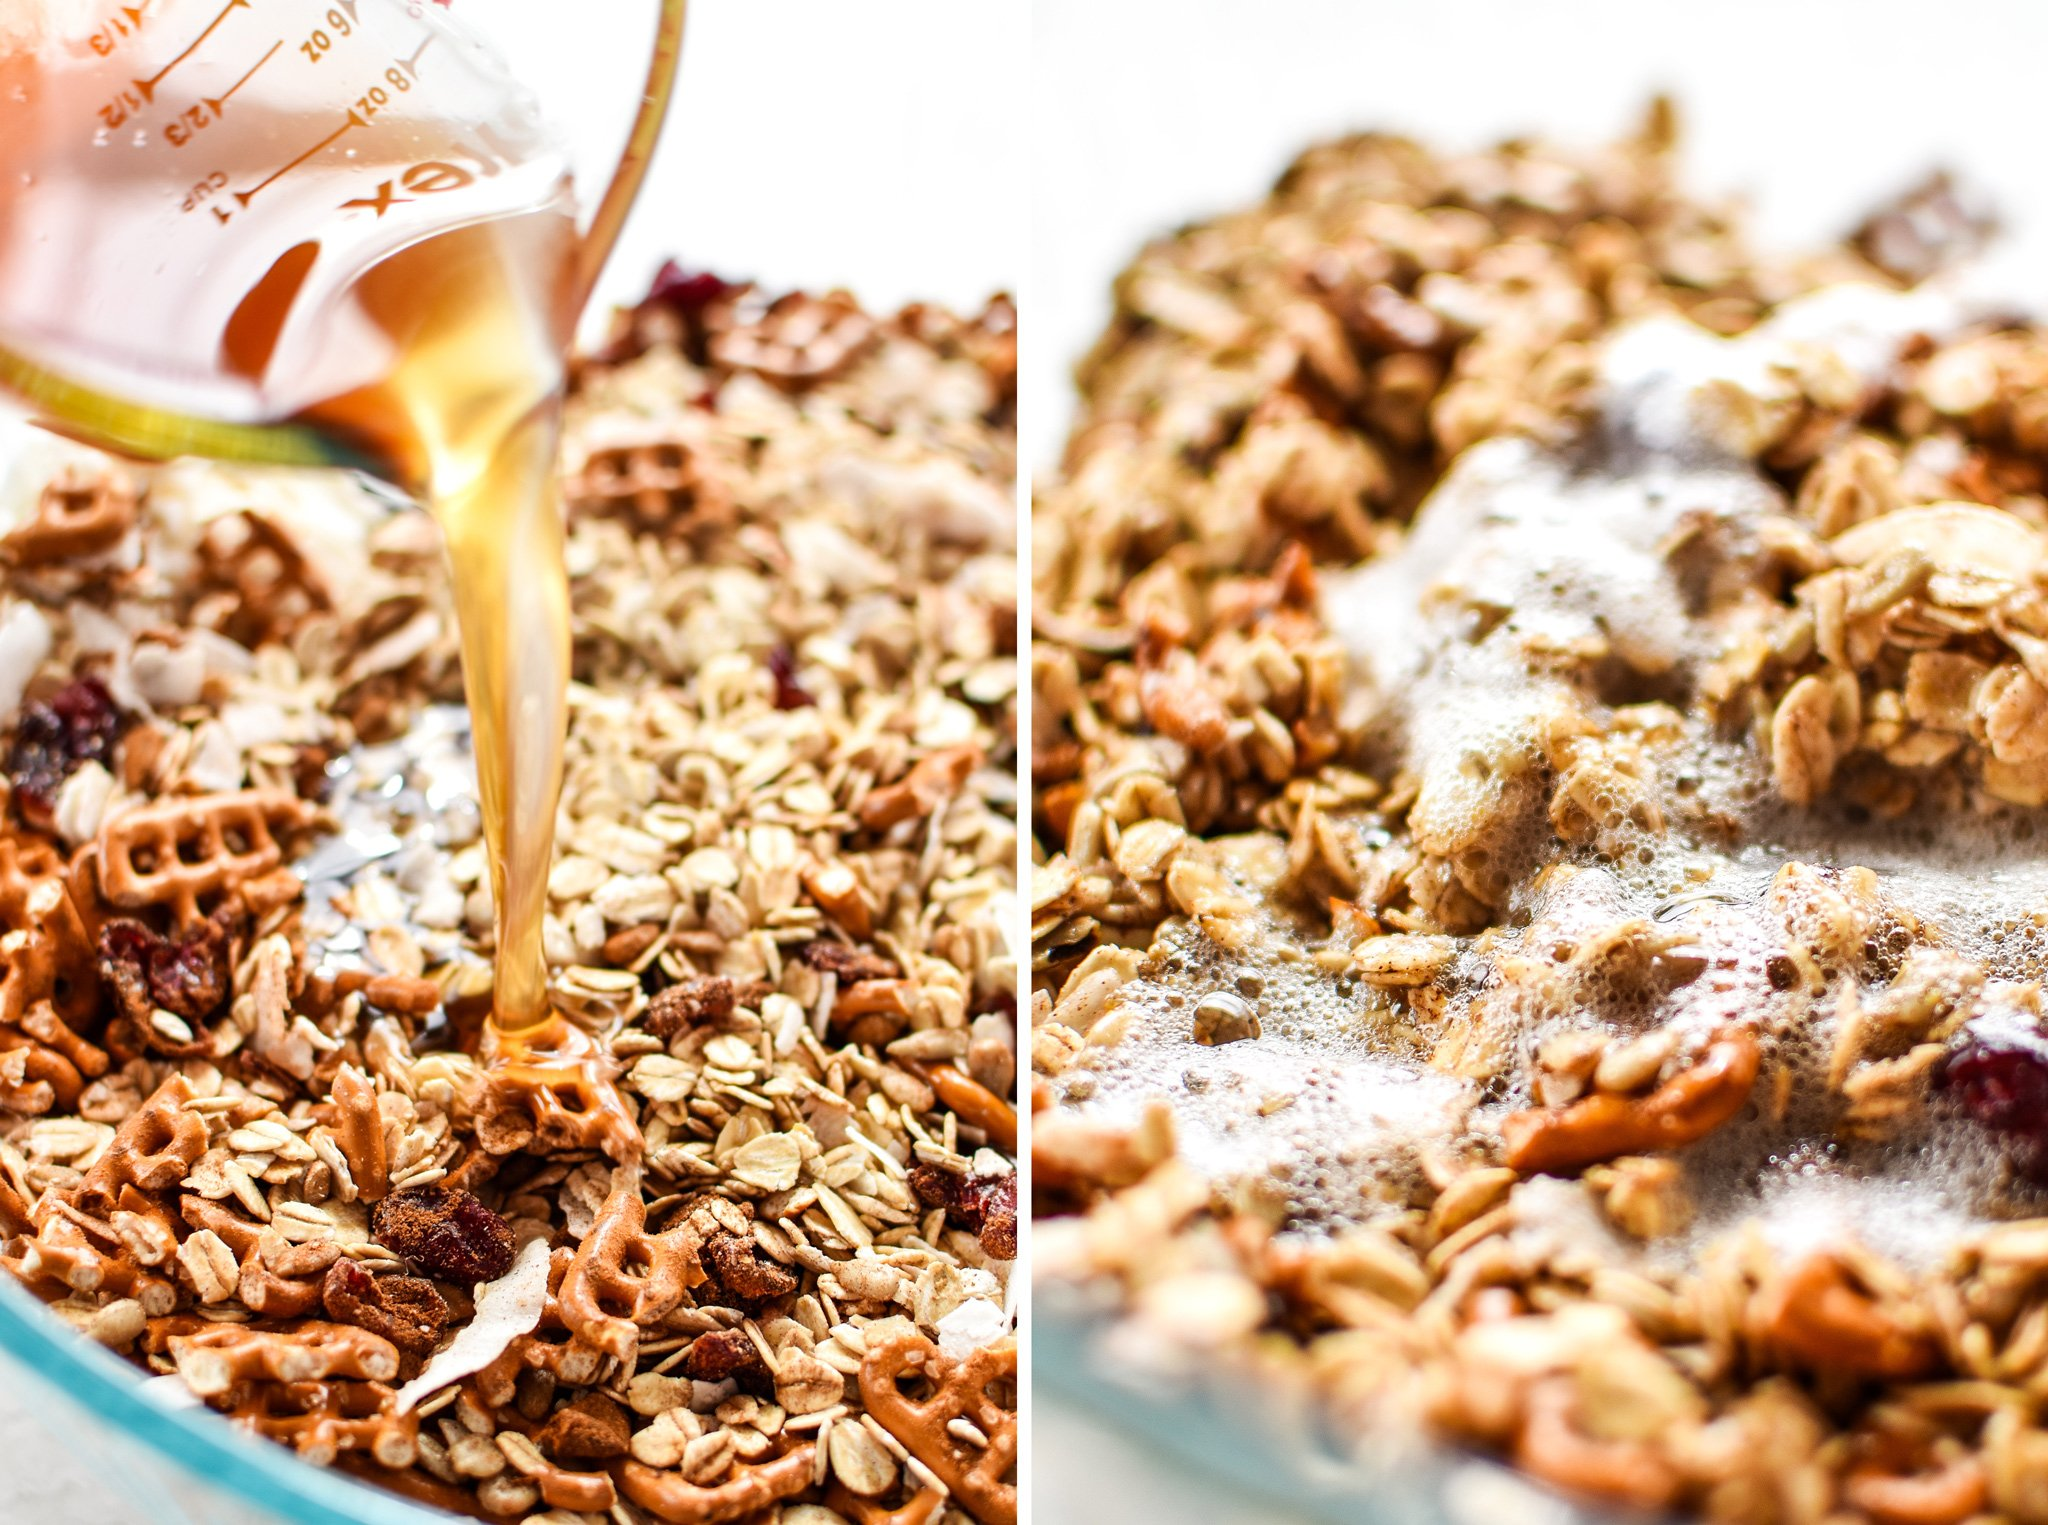 Pouring ingredients into the bowl of granola mixture.